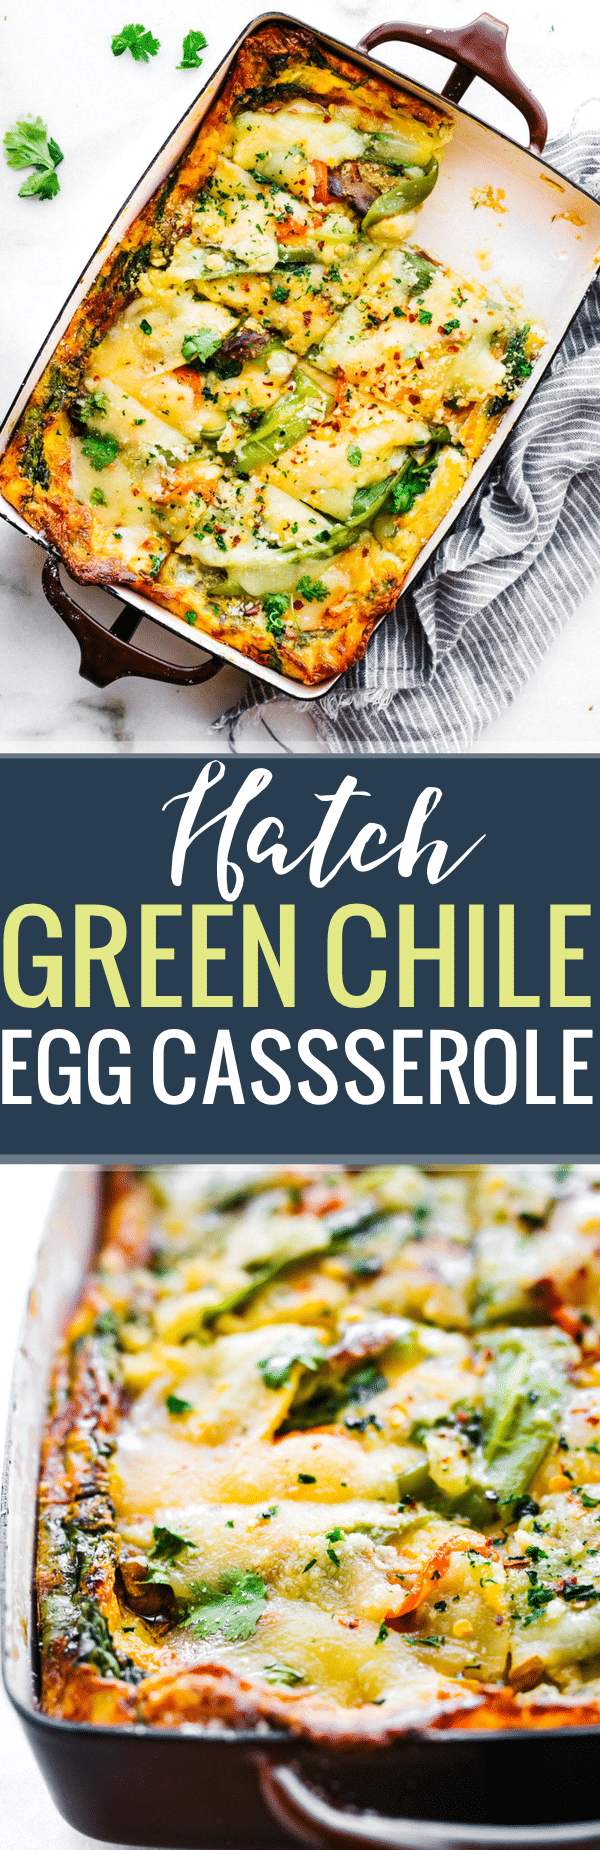 This Roasted Green Chile egg casserolemakes for a quick breakfast, lunch, or dinner! An egg casserole with layers of green chiles, creamy artisan cheese, spinach, and other vegetables. It's wholesome yet light and delicious! Grain free, gluten free, and easy to make.www.cottercrunch.com